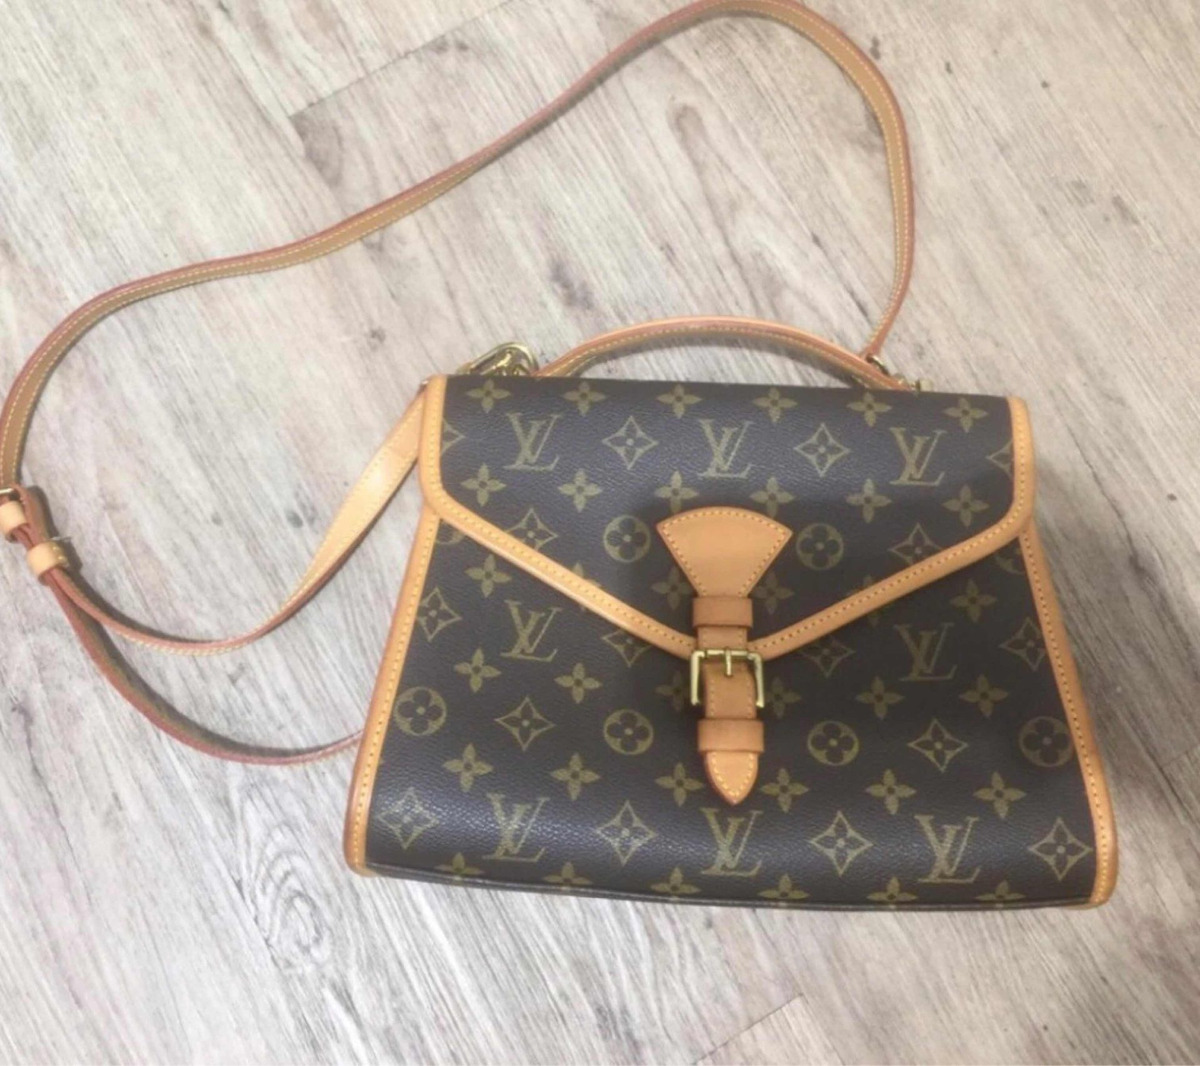 b1fc2c322 Bolsa Louis Vuitton Bel Air 2way Business Monogram - R$ 2.890,00 em ...